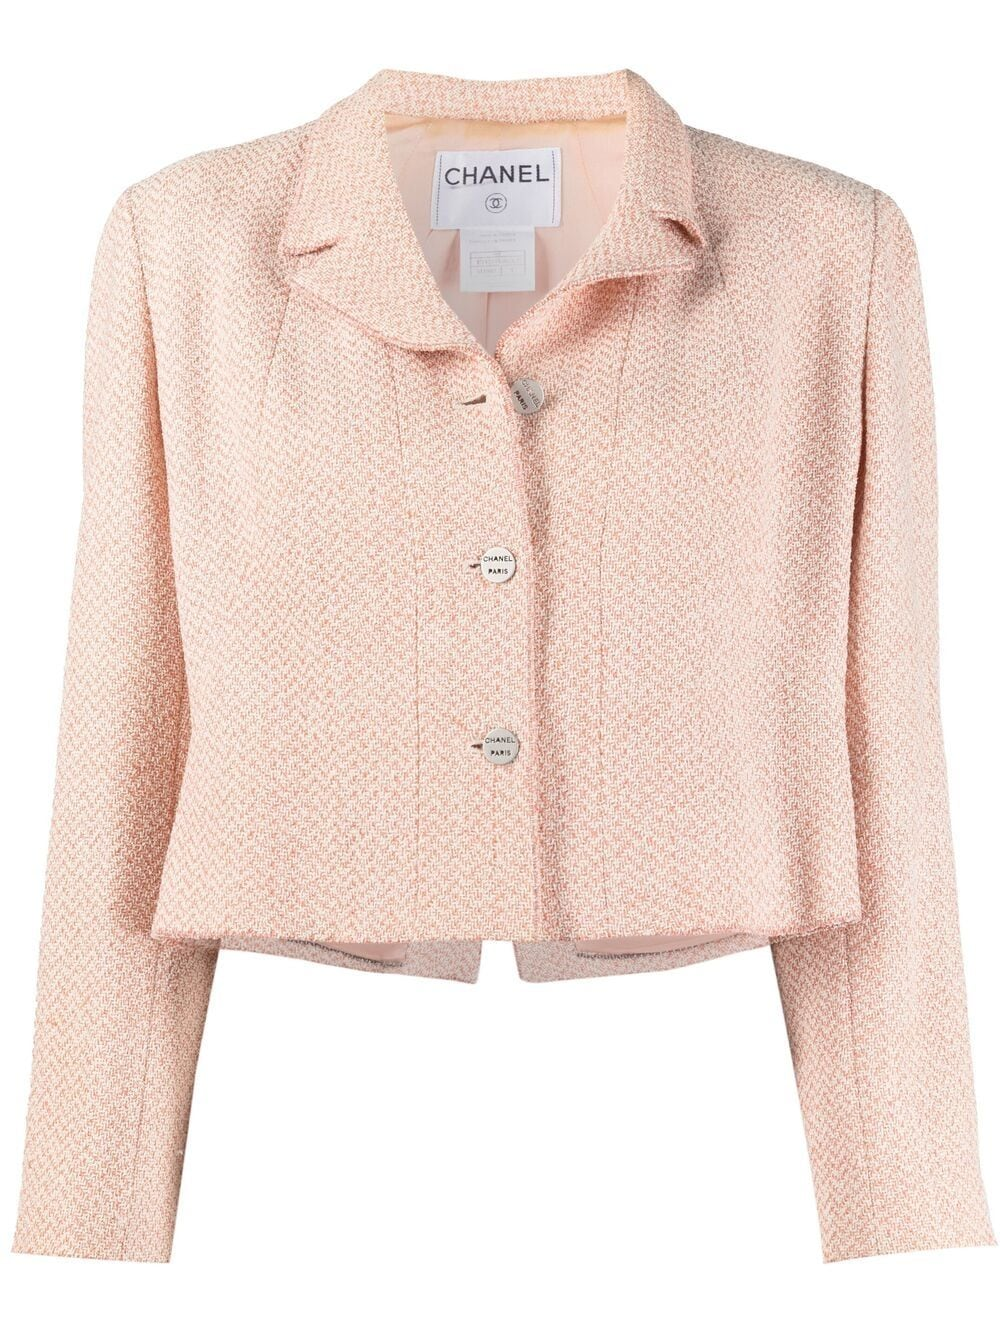 chanel-pre-owned-cropped-tweed-jacket